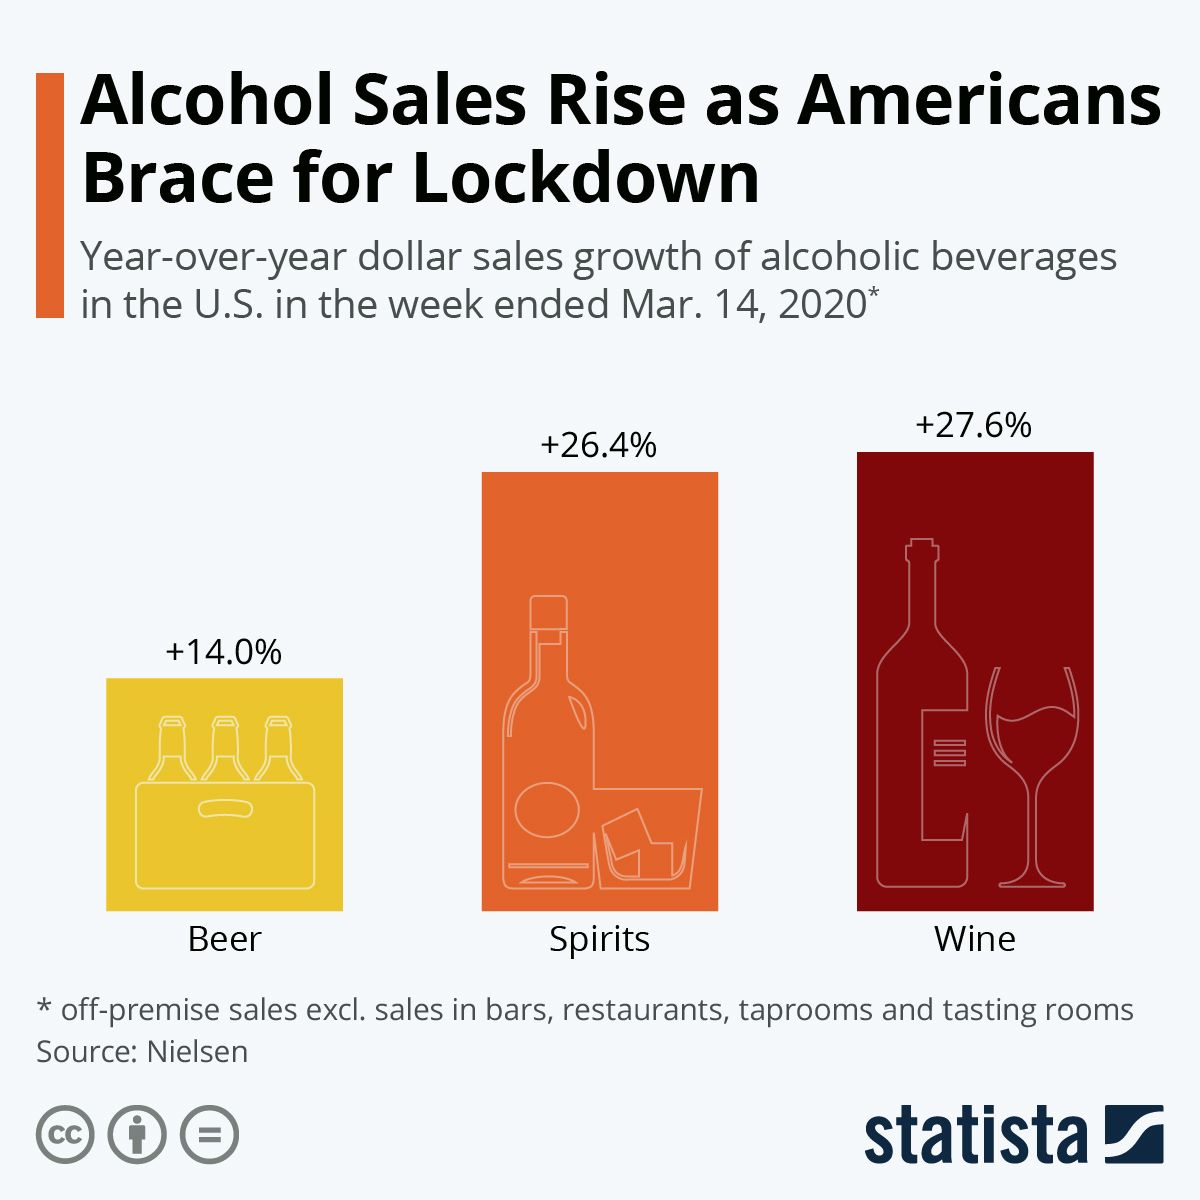 Alcohol Sales Rise as Americans Brace for Lockdown